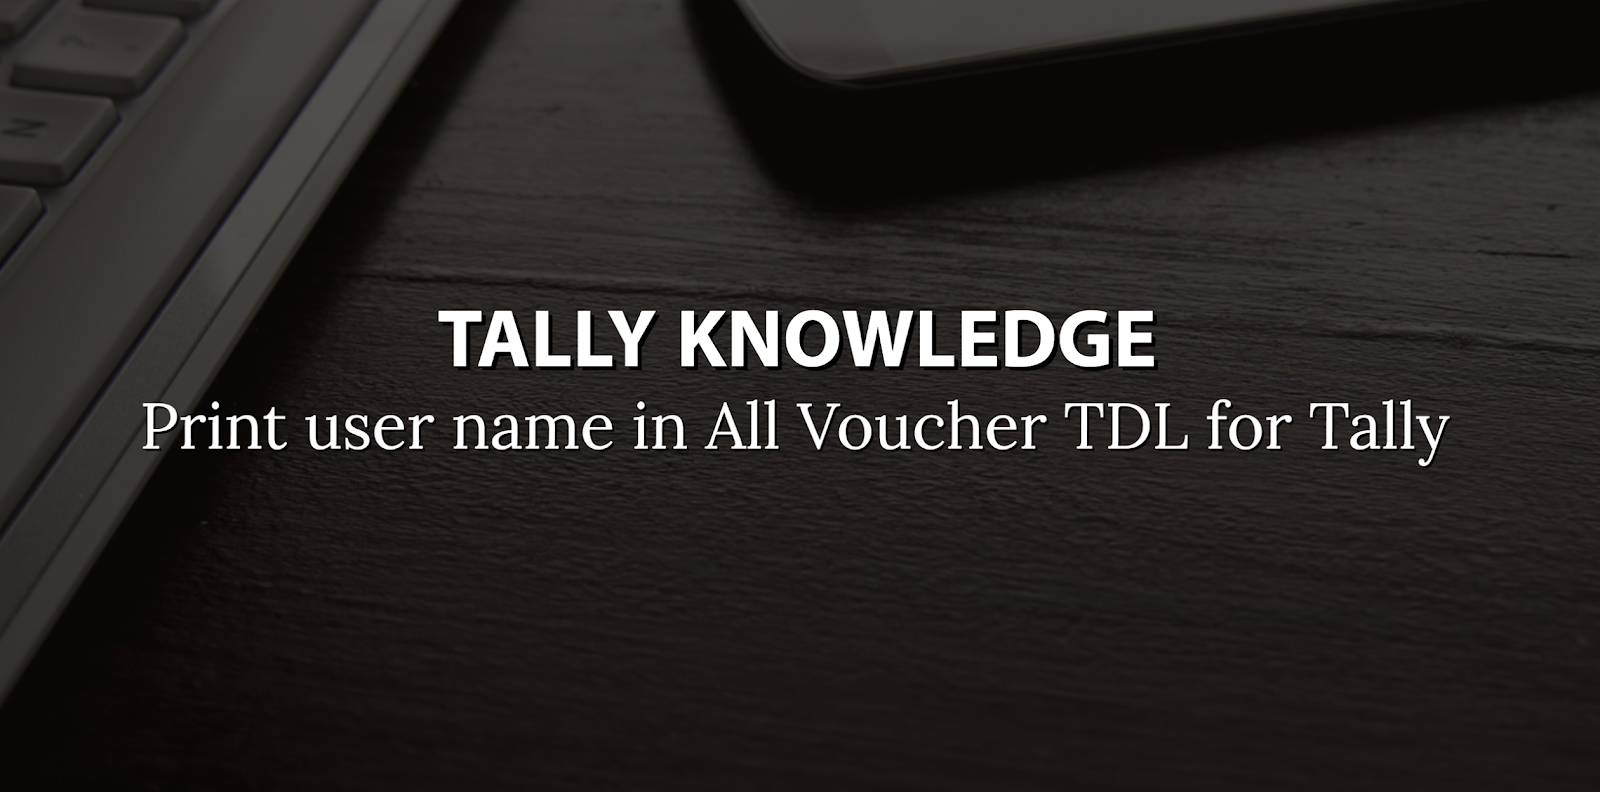 Print user name in All Voucher TDL for Tally